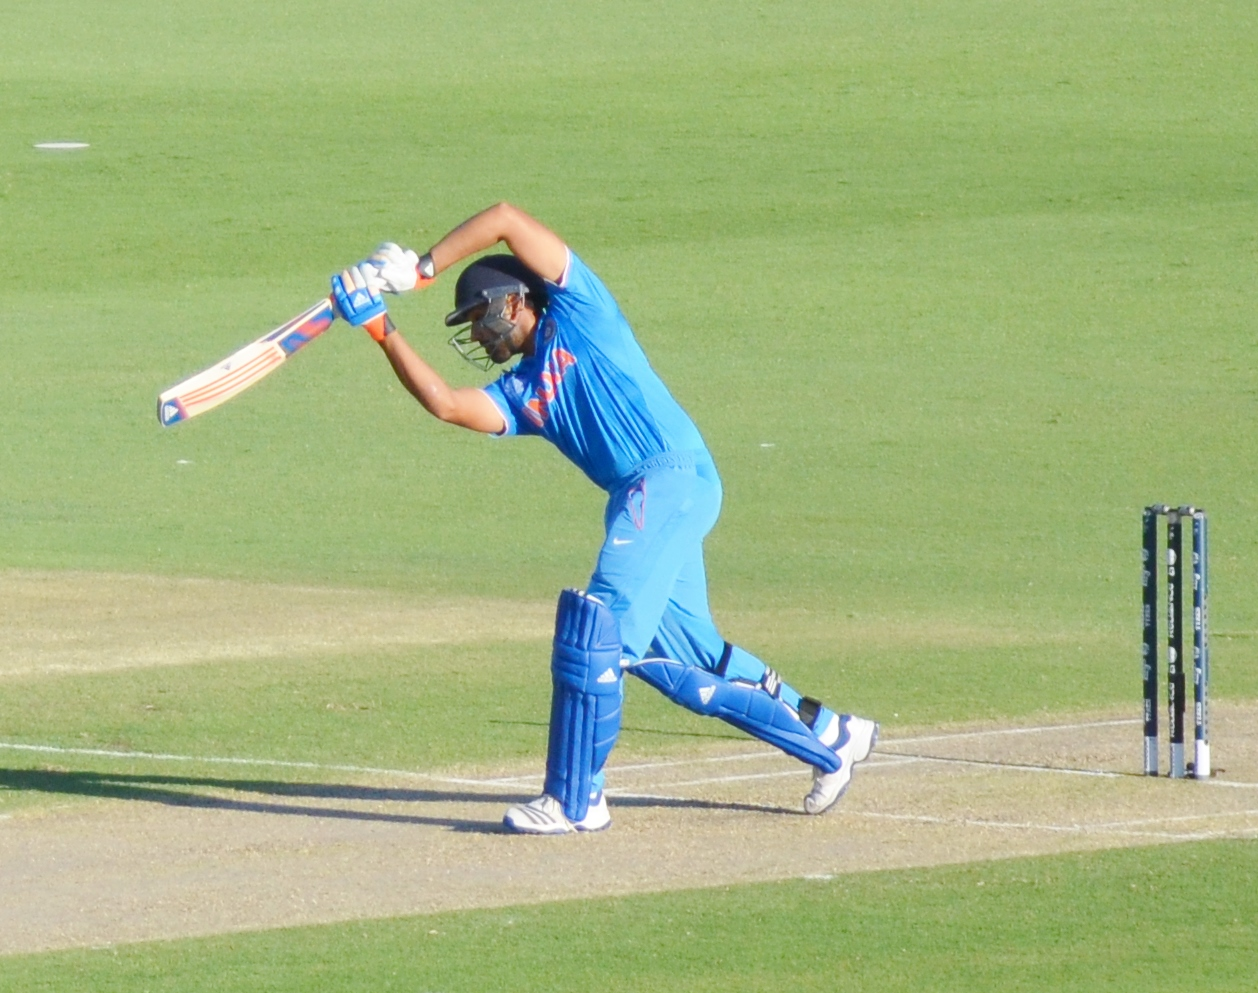 India's Predicted Playing XI for first T20I vs Windies